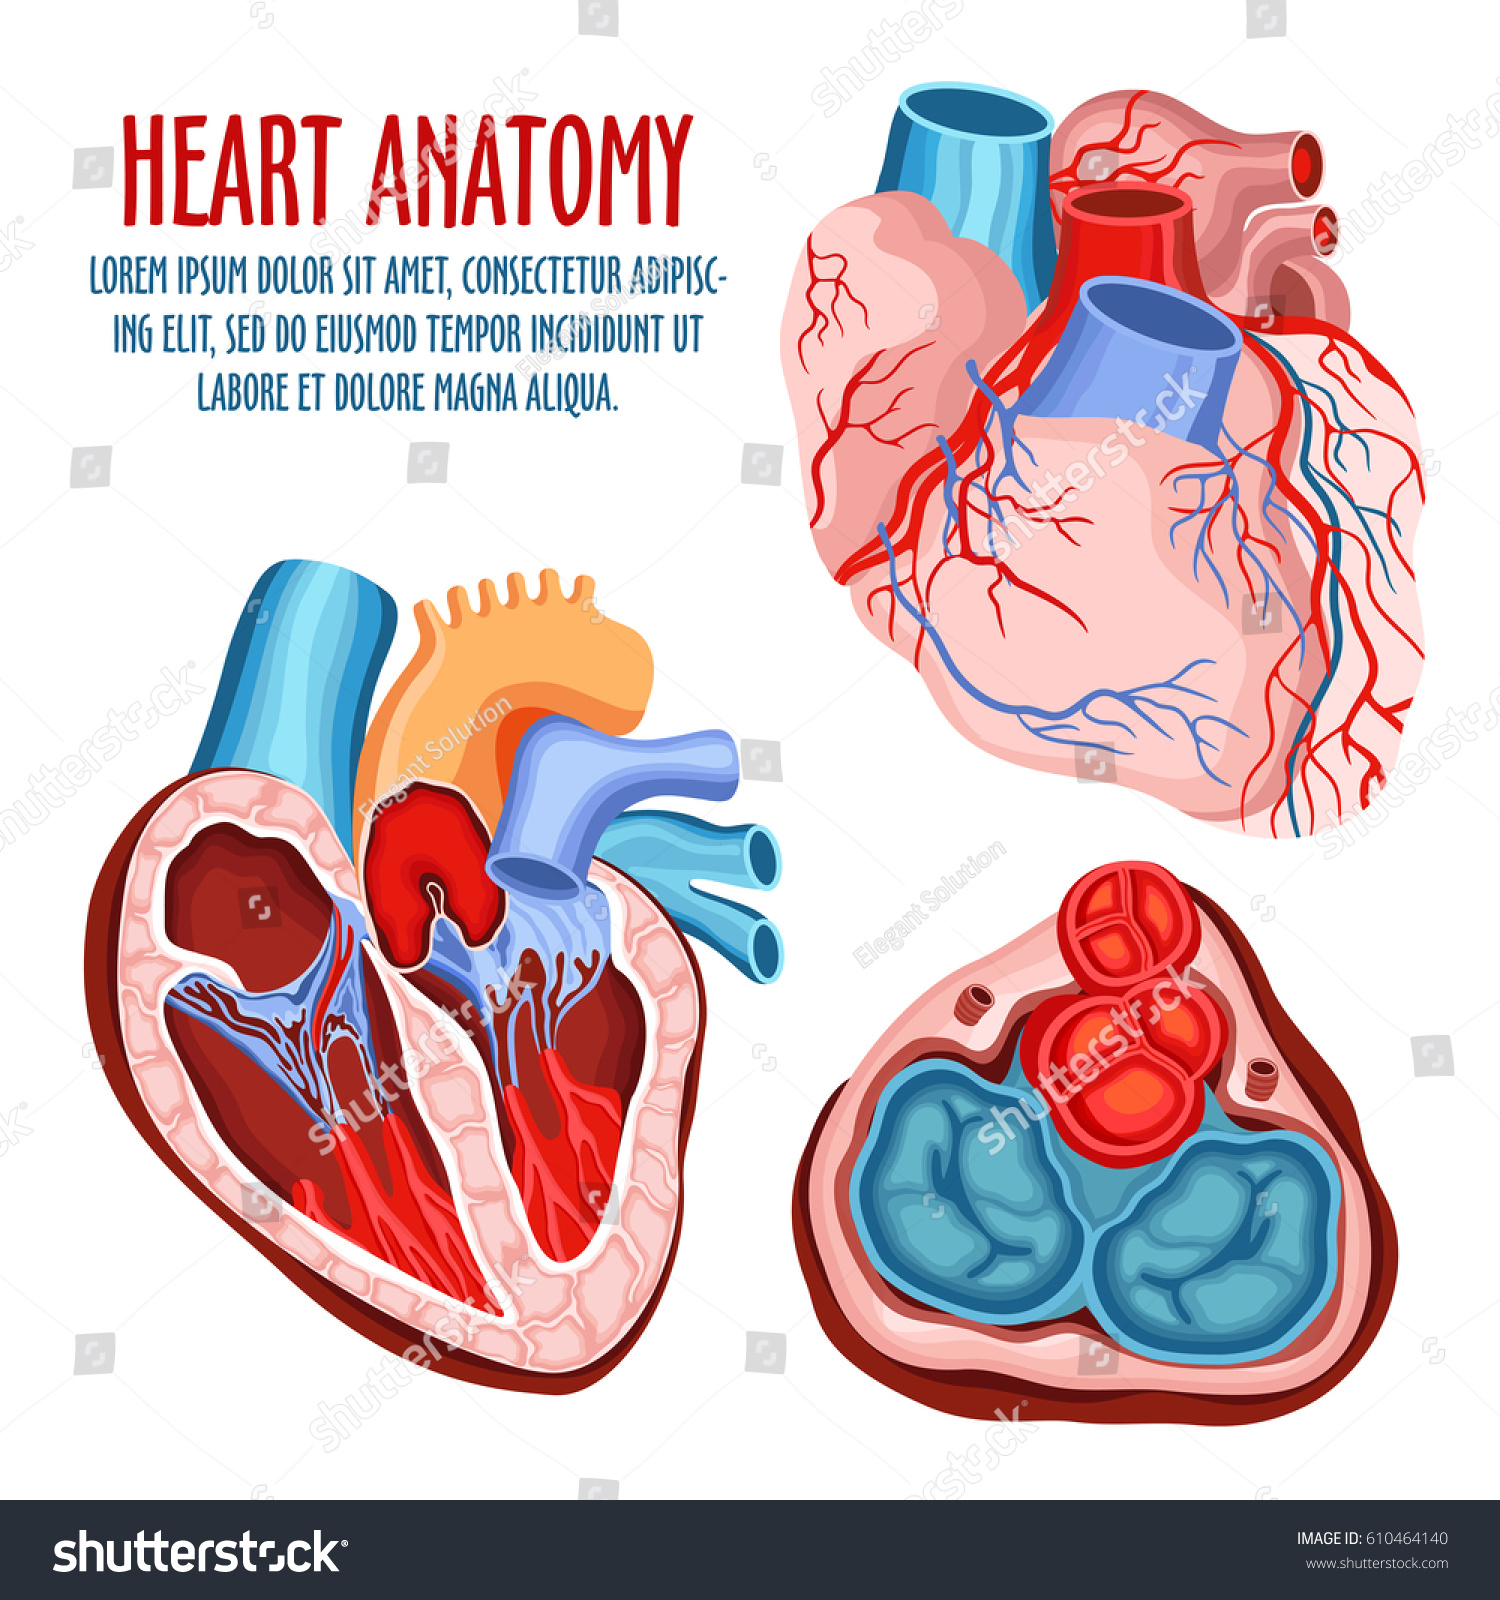 Anatomy Heart Human Coronary Organ Atrium Stock Vector 610464140